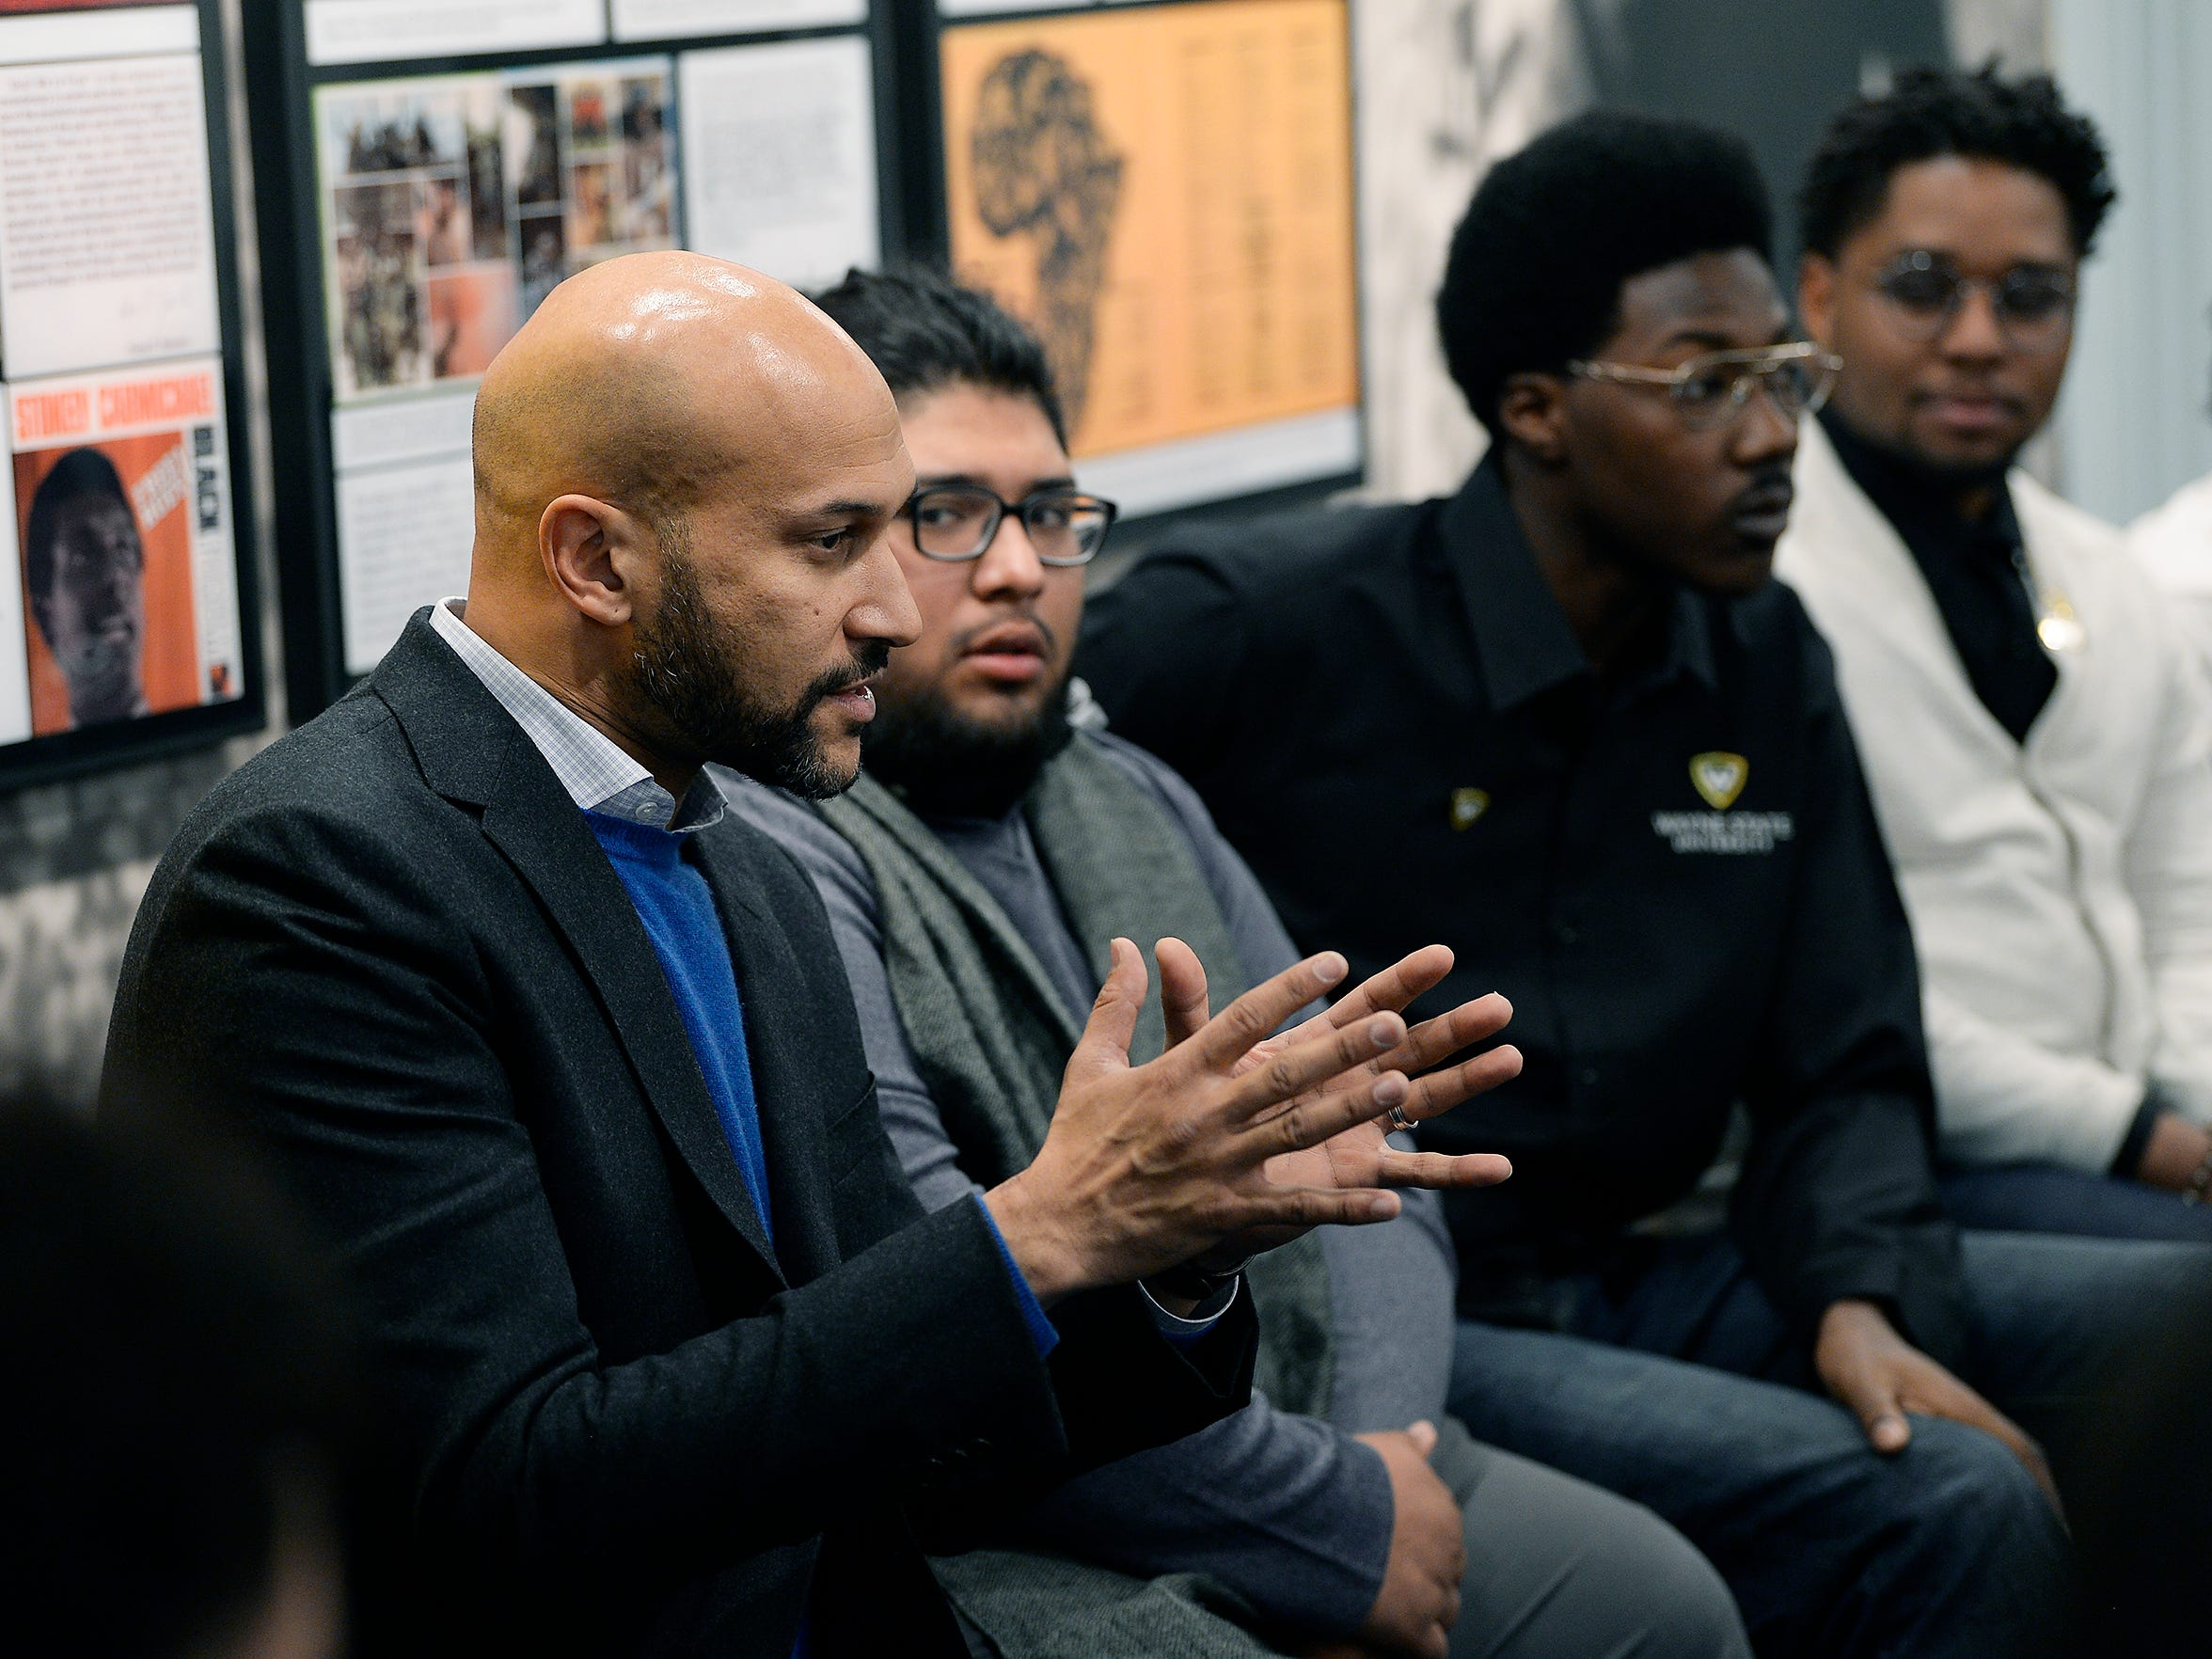 Keegan-Michael Key, actor and Detroit native talks about his road to becoming an actor and the ups and downs that he encountered.